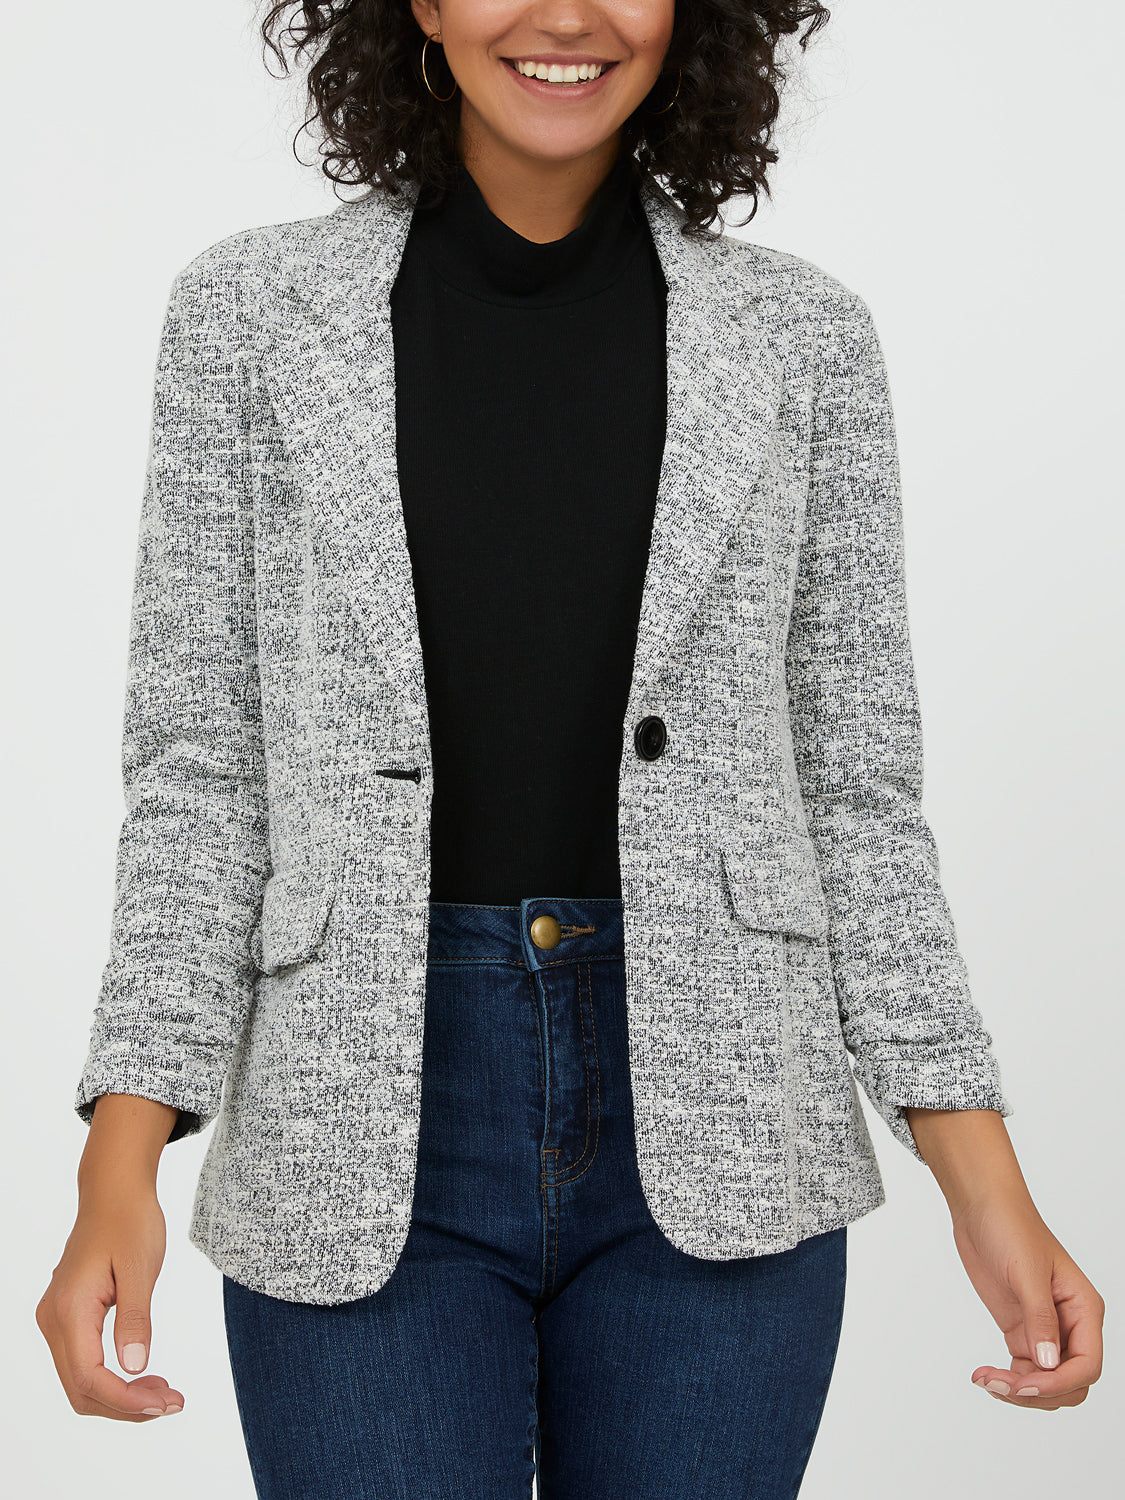 ¾ Sleeves Notch Collar Blazer